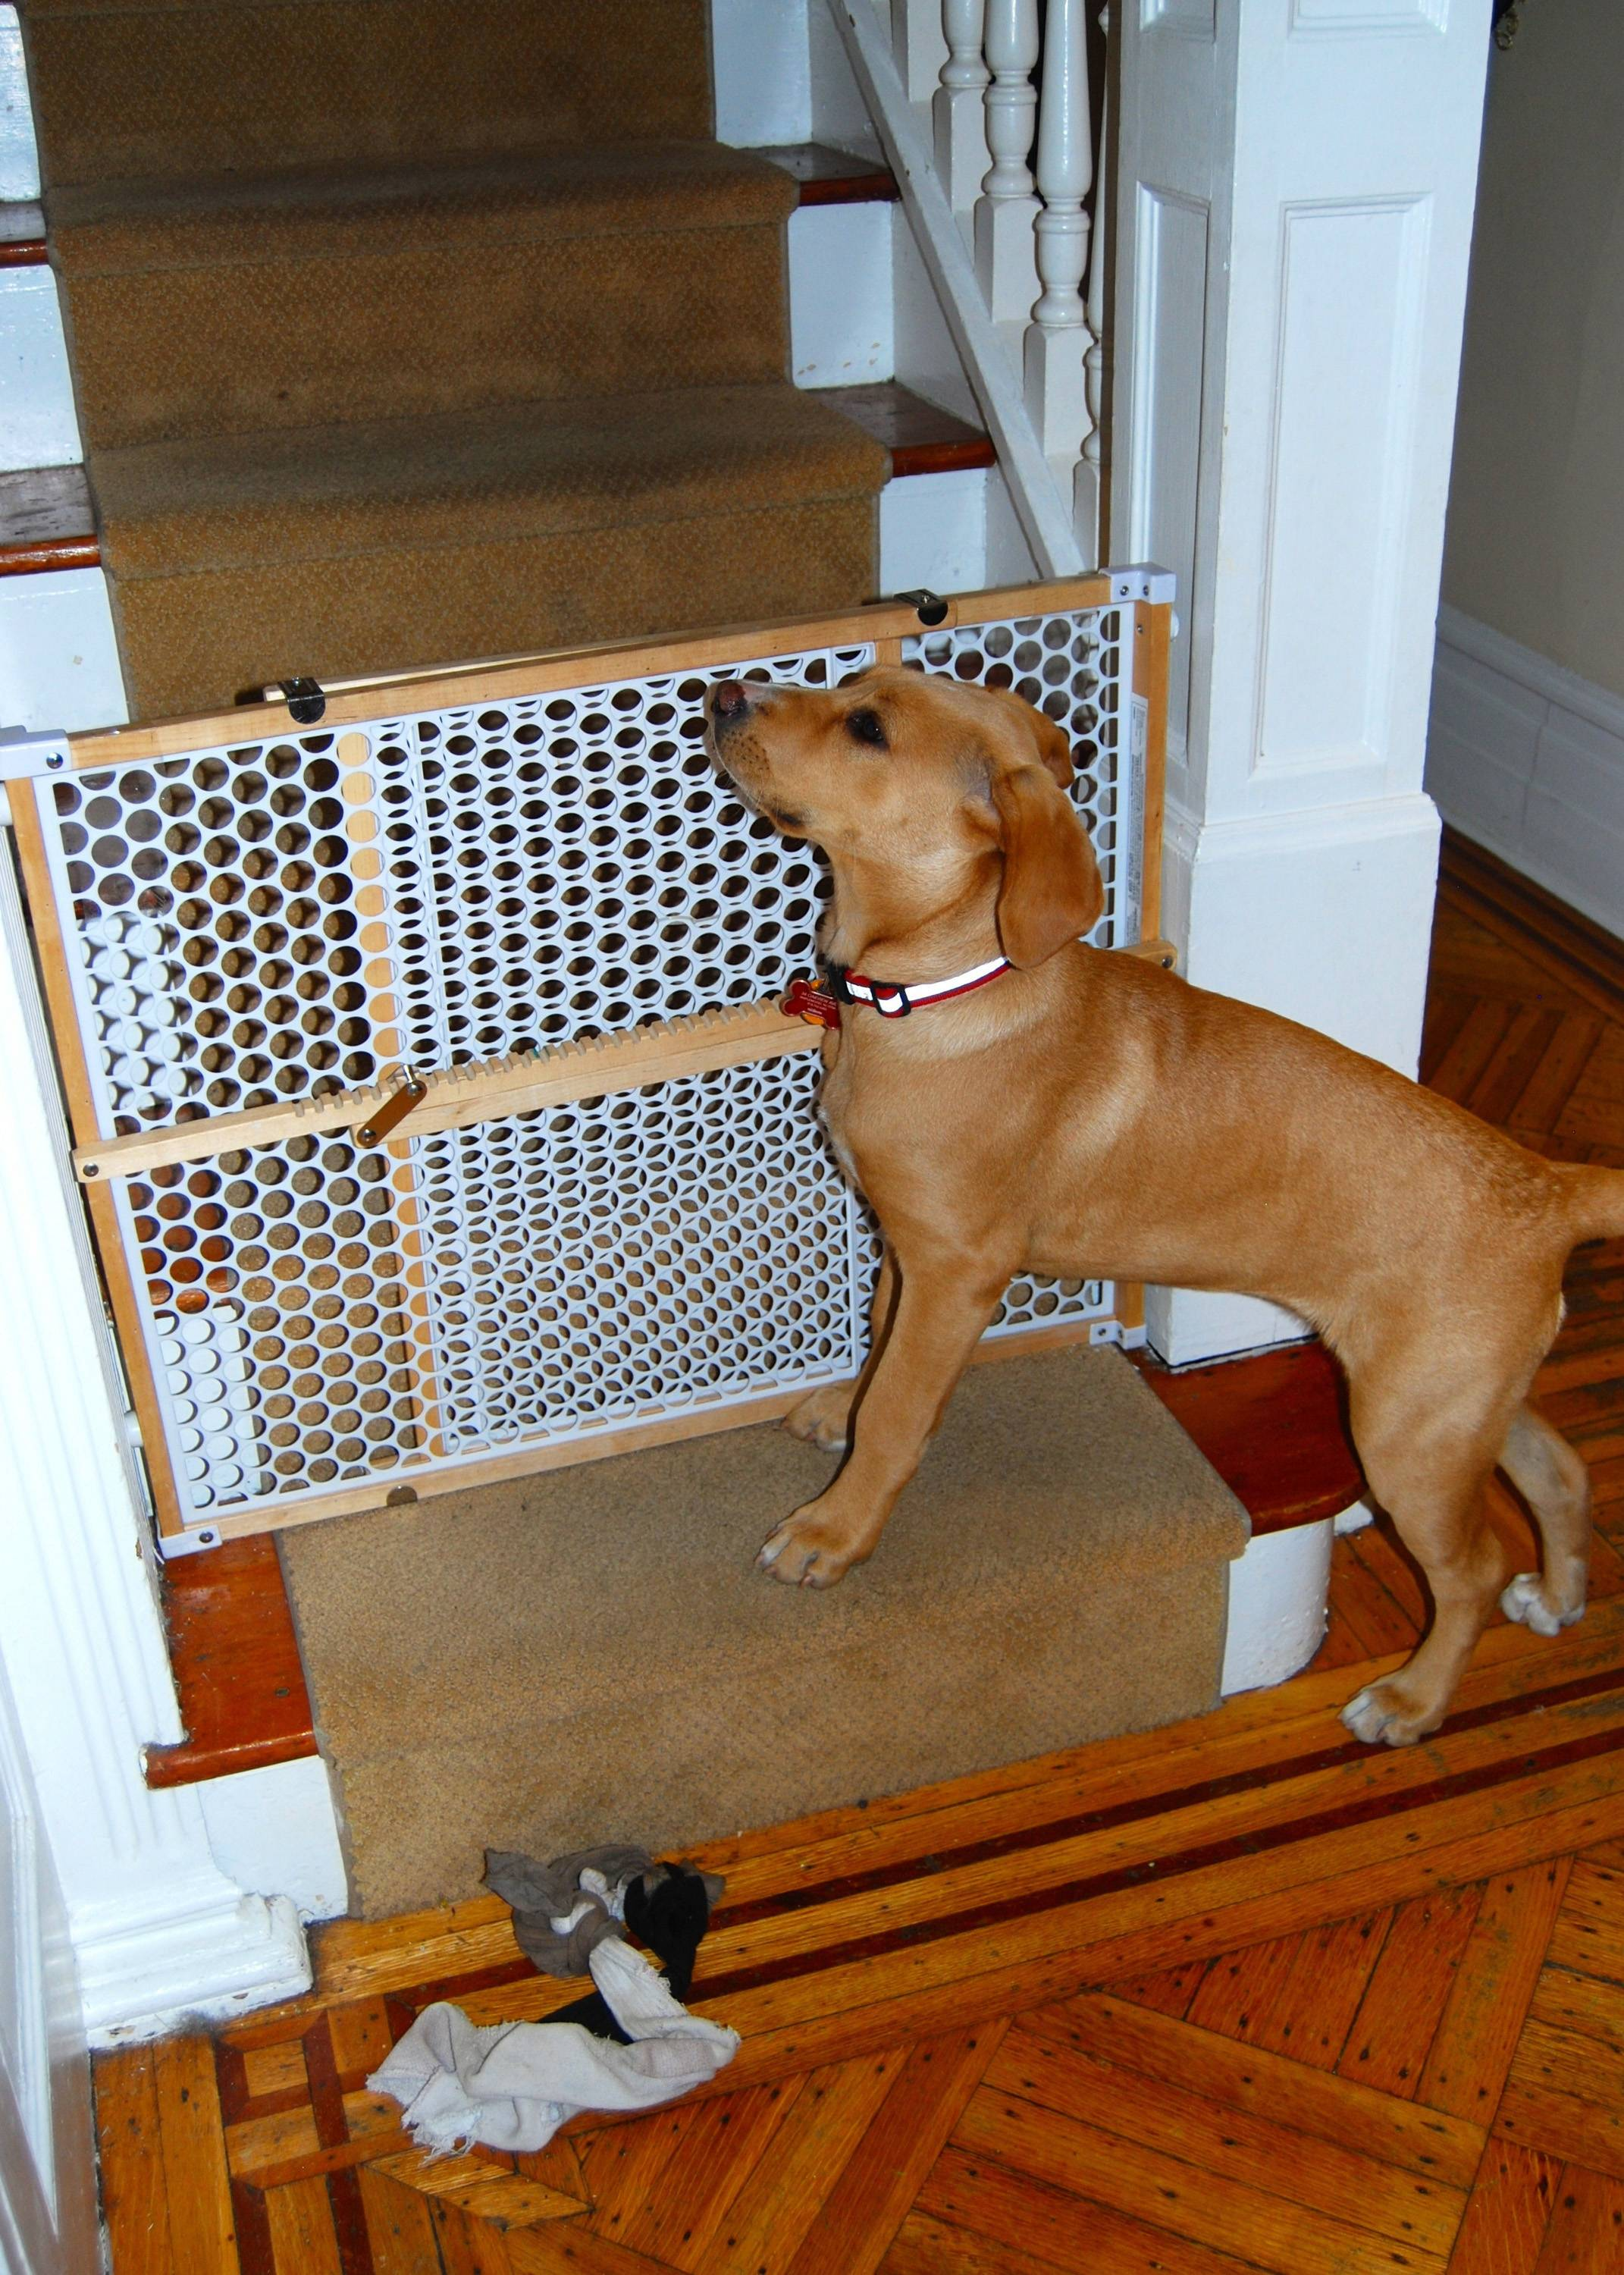 A puppy waits by a gate for children to come downstairs from their bedrooms in the morning. The gate prevents the puppy from going to the second floor, where she is not yet allowed.